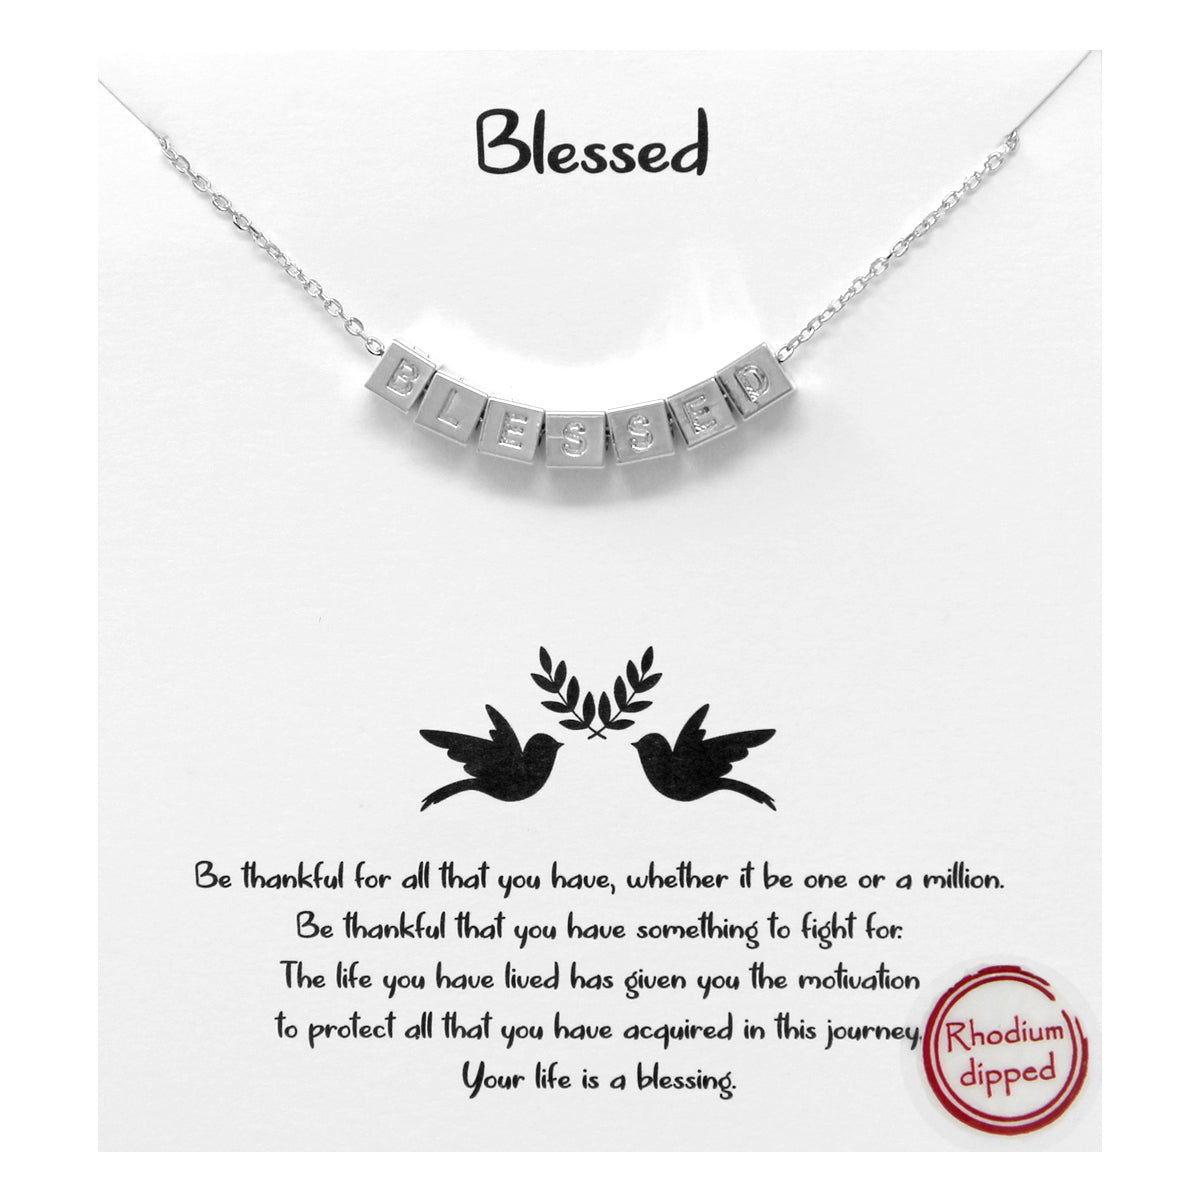 Tell Your Story: Blessed Engraved Cube Pendant Simple Chain Necklace